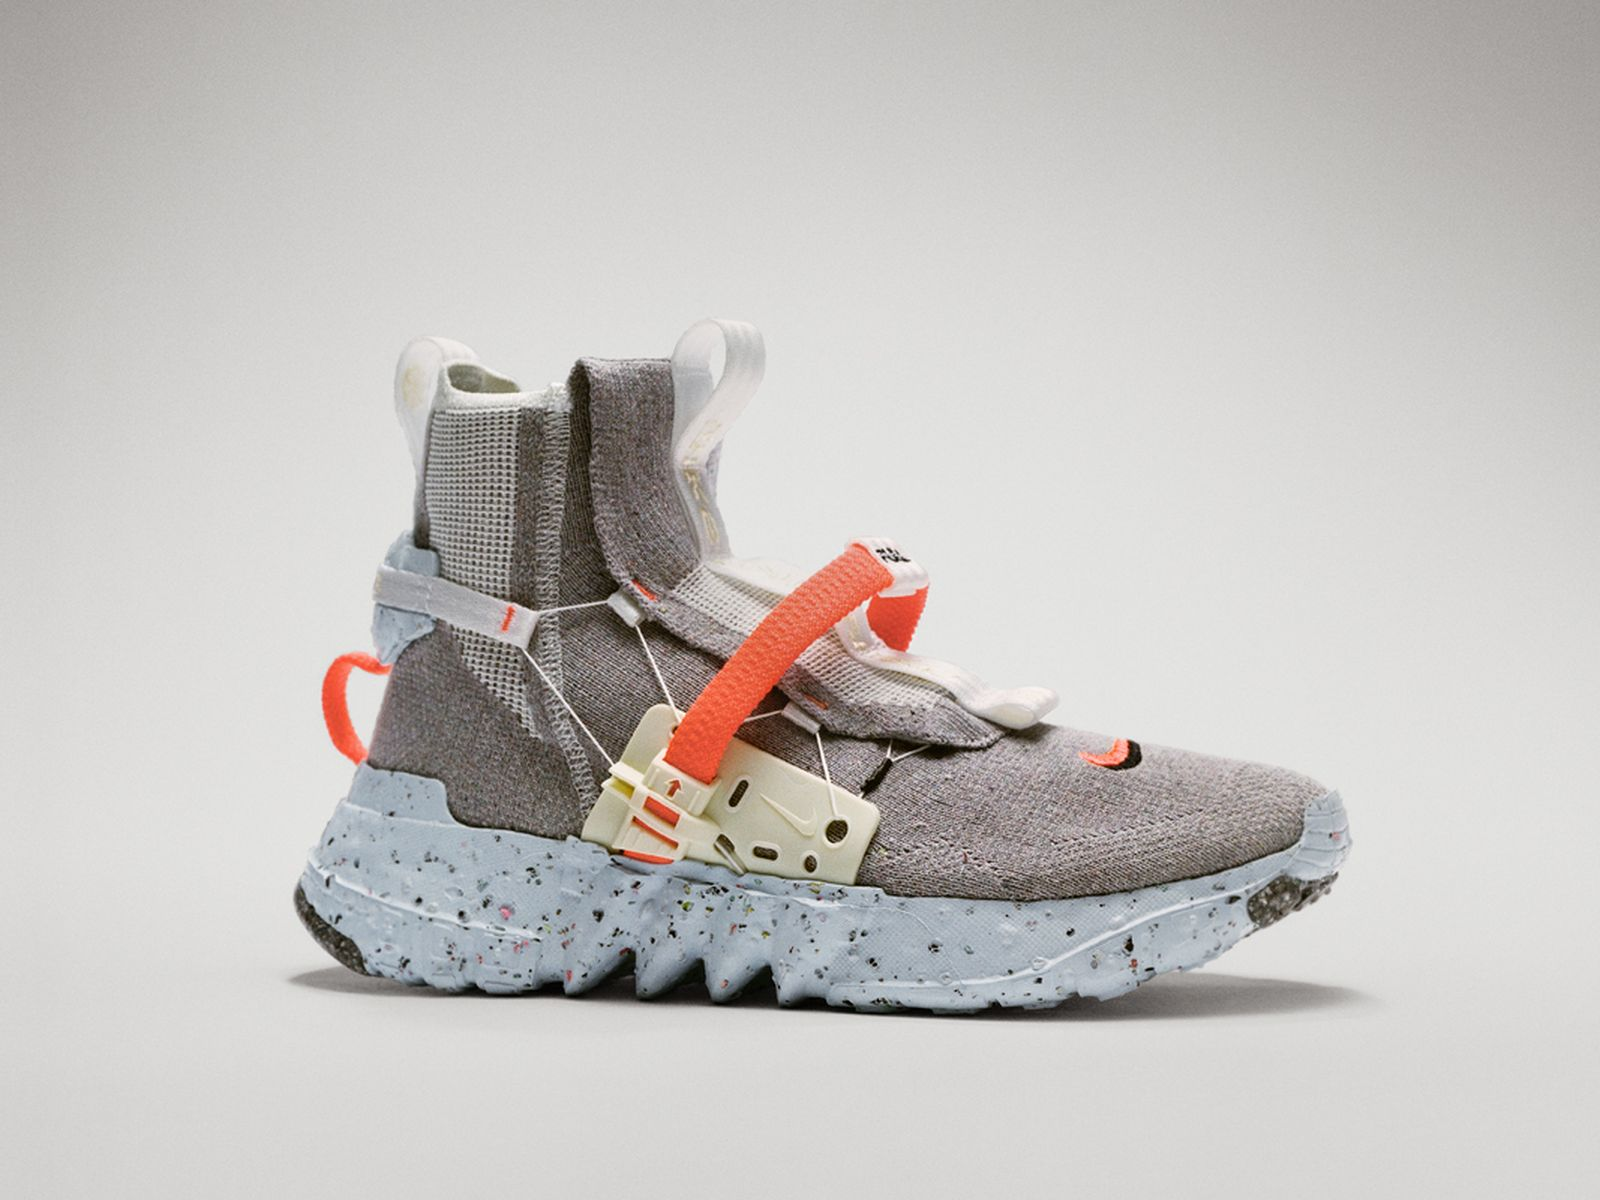 NIKE SPACE HIPPIE 3